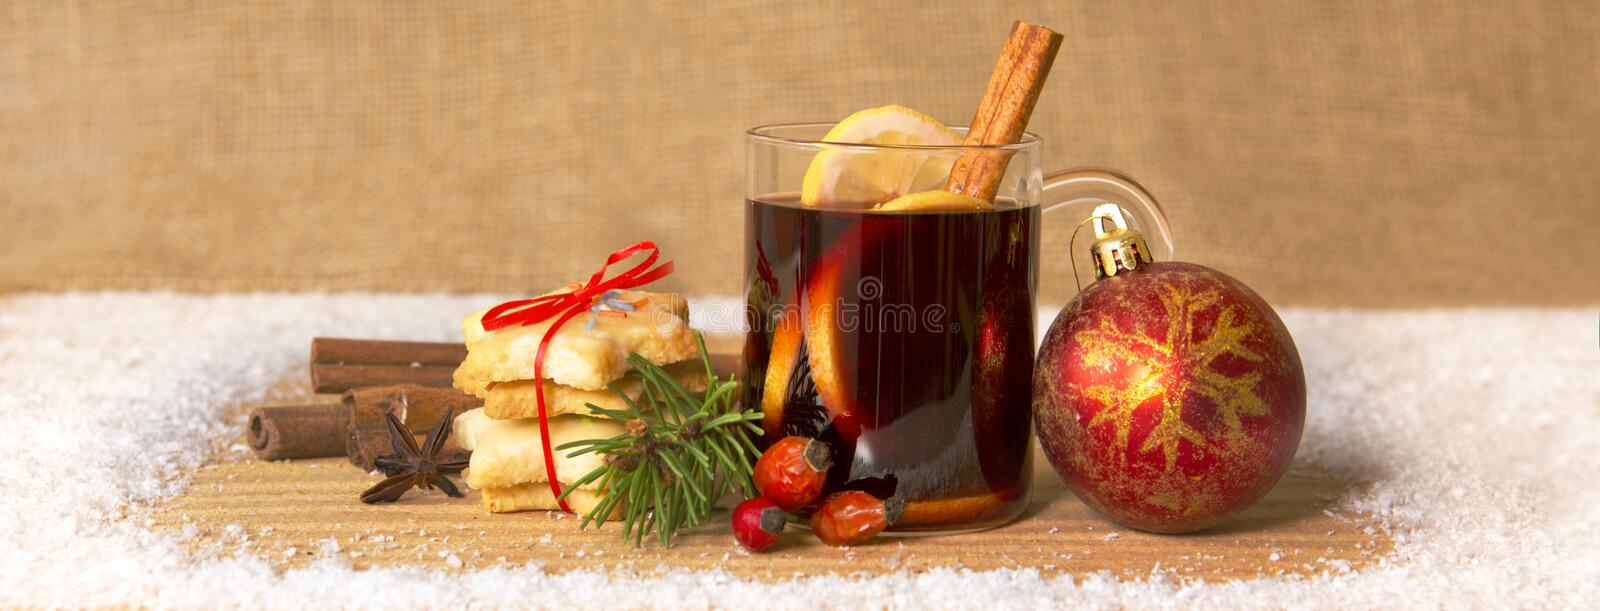 Mulled wine and Christmas ball. royalty free stock photography